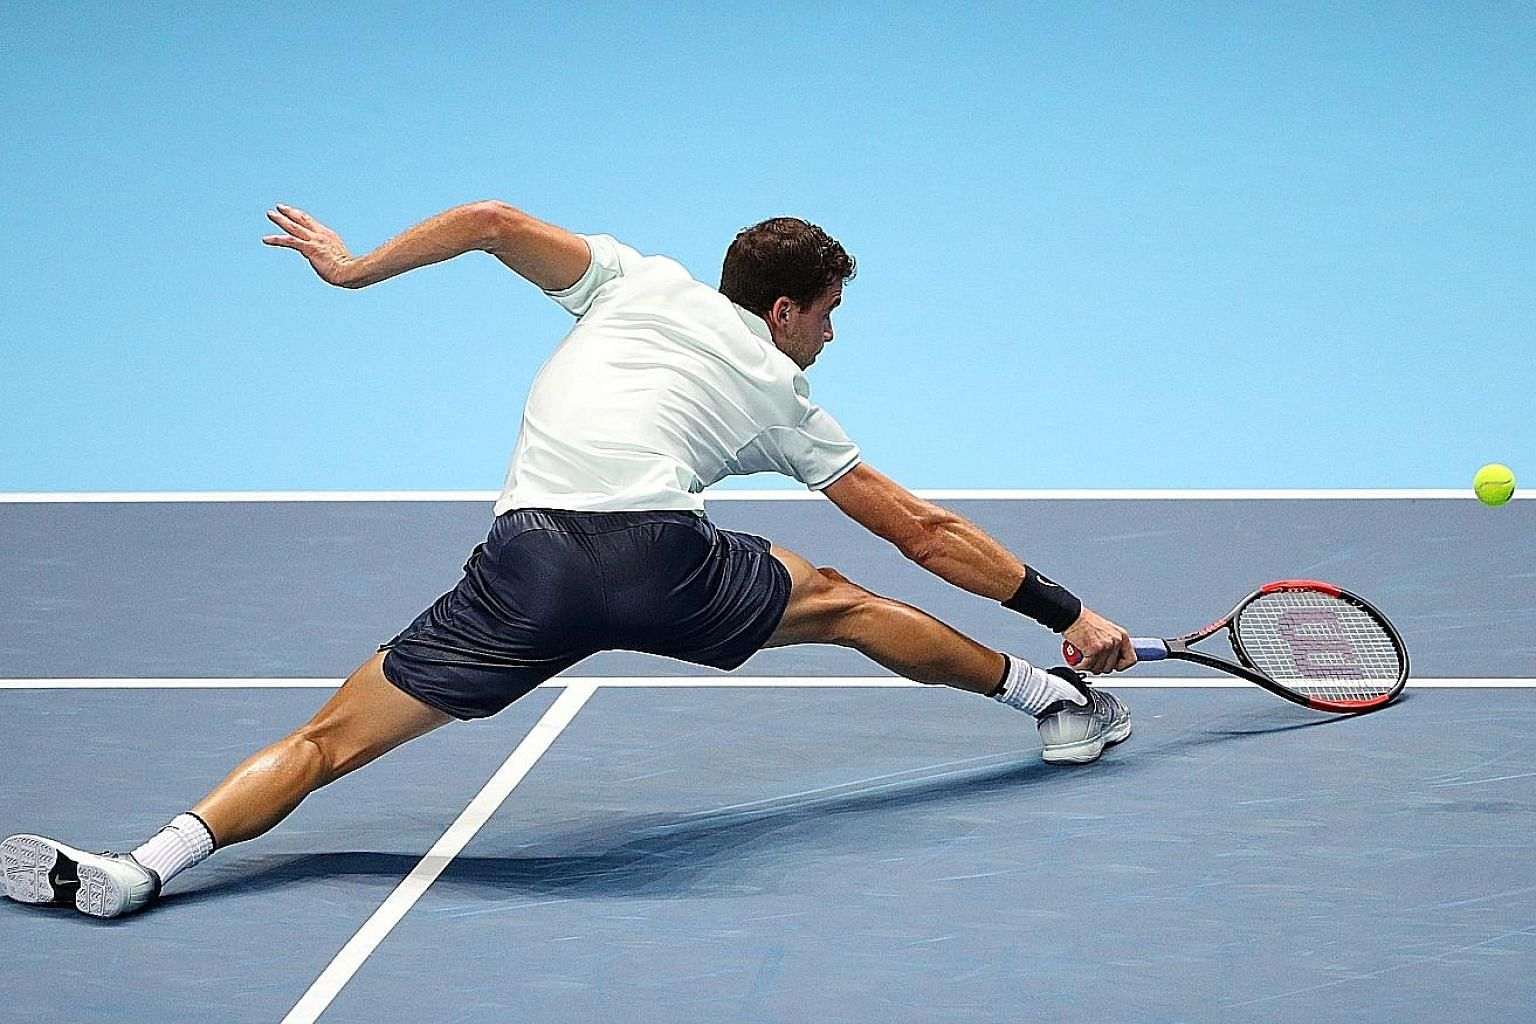 Bulgaria's Grigor Dimitrov in action against Belgian David Goffin on Wednesday. The world No. 6, who has enjoyed the best year of his career with three titles and a last-four place at the Australian Open, will be in the semi-finals of the ATP Finals